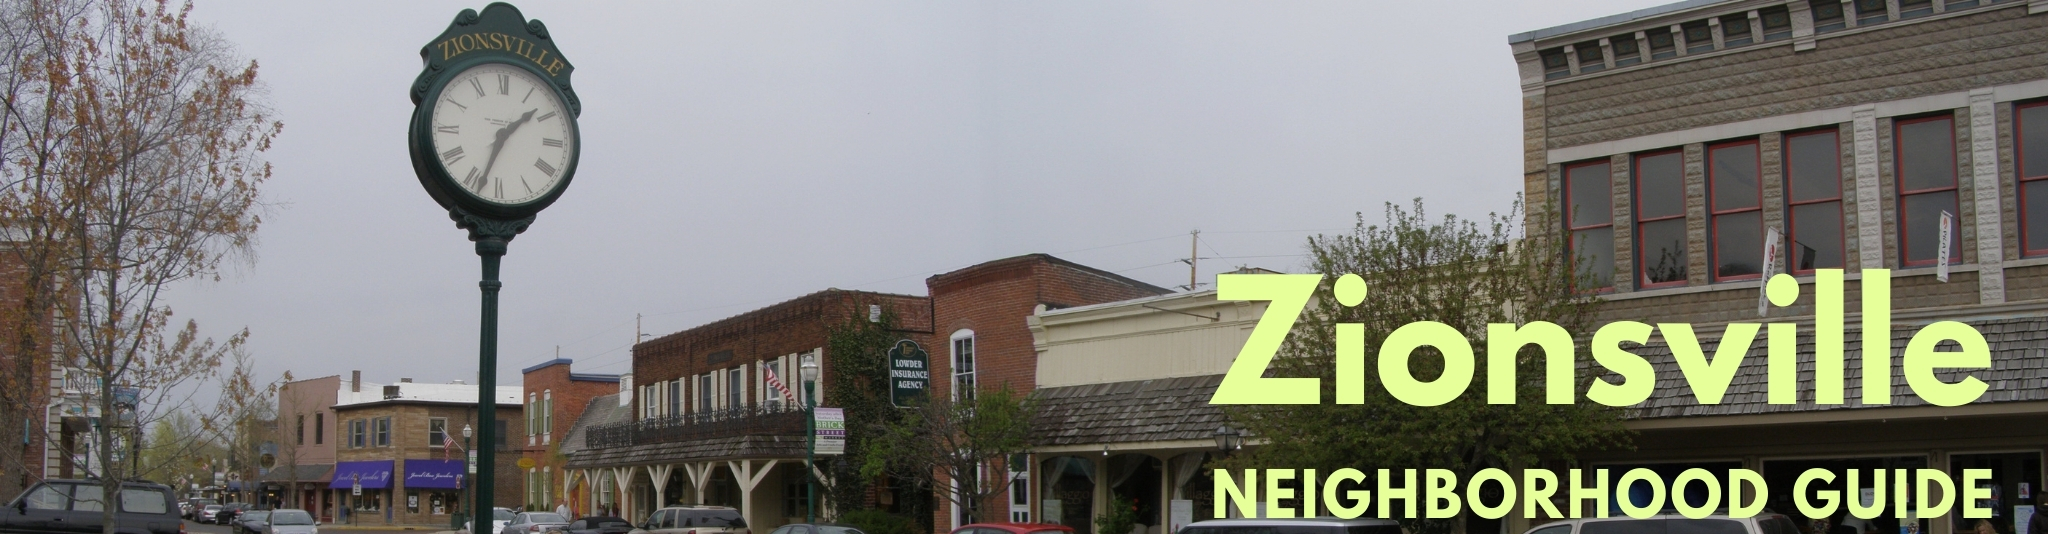 Downtown Zionsville Indiana has a beautiful Main Street.